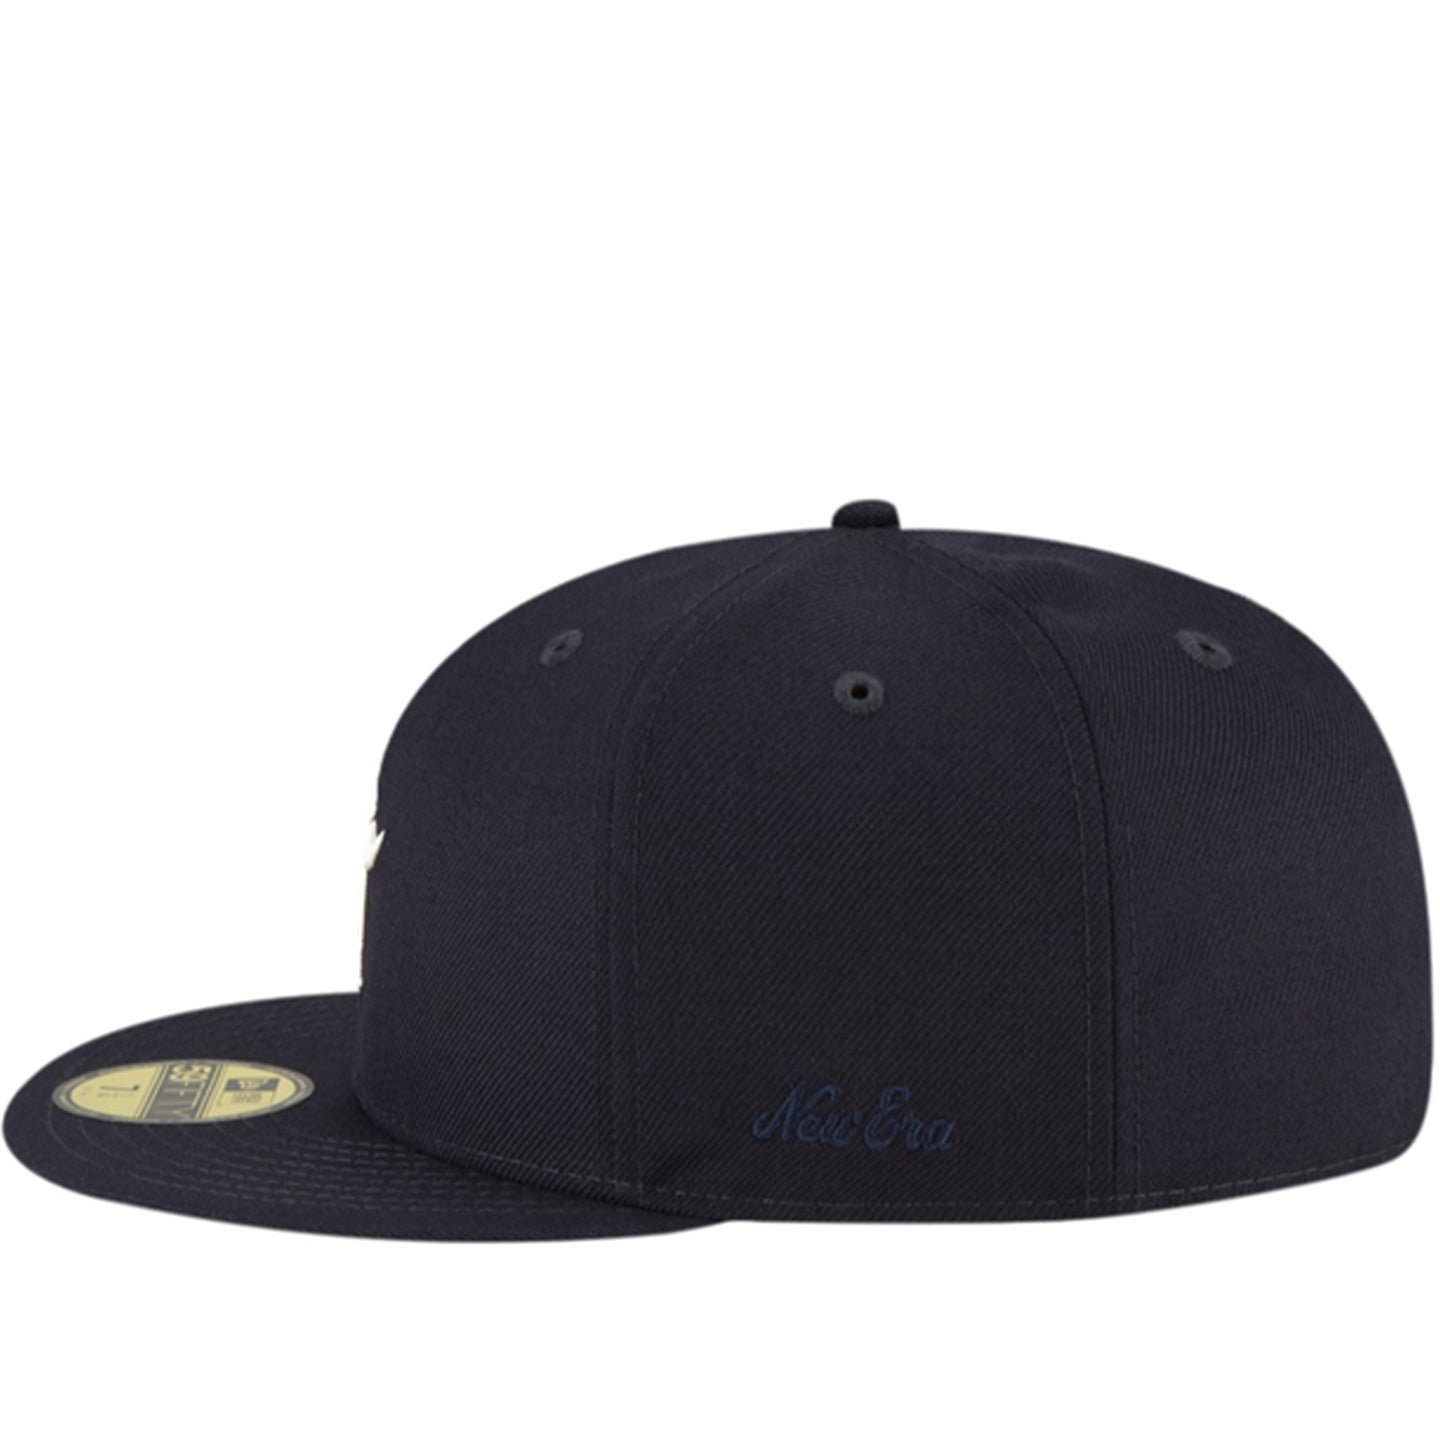 FEAR OF GOD ESSENTIALS NEW ERA FITTED NAVY